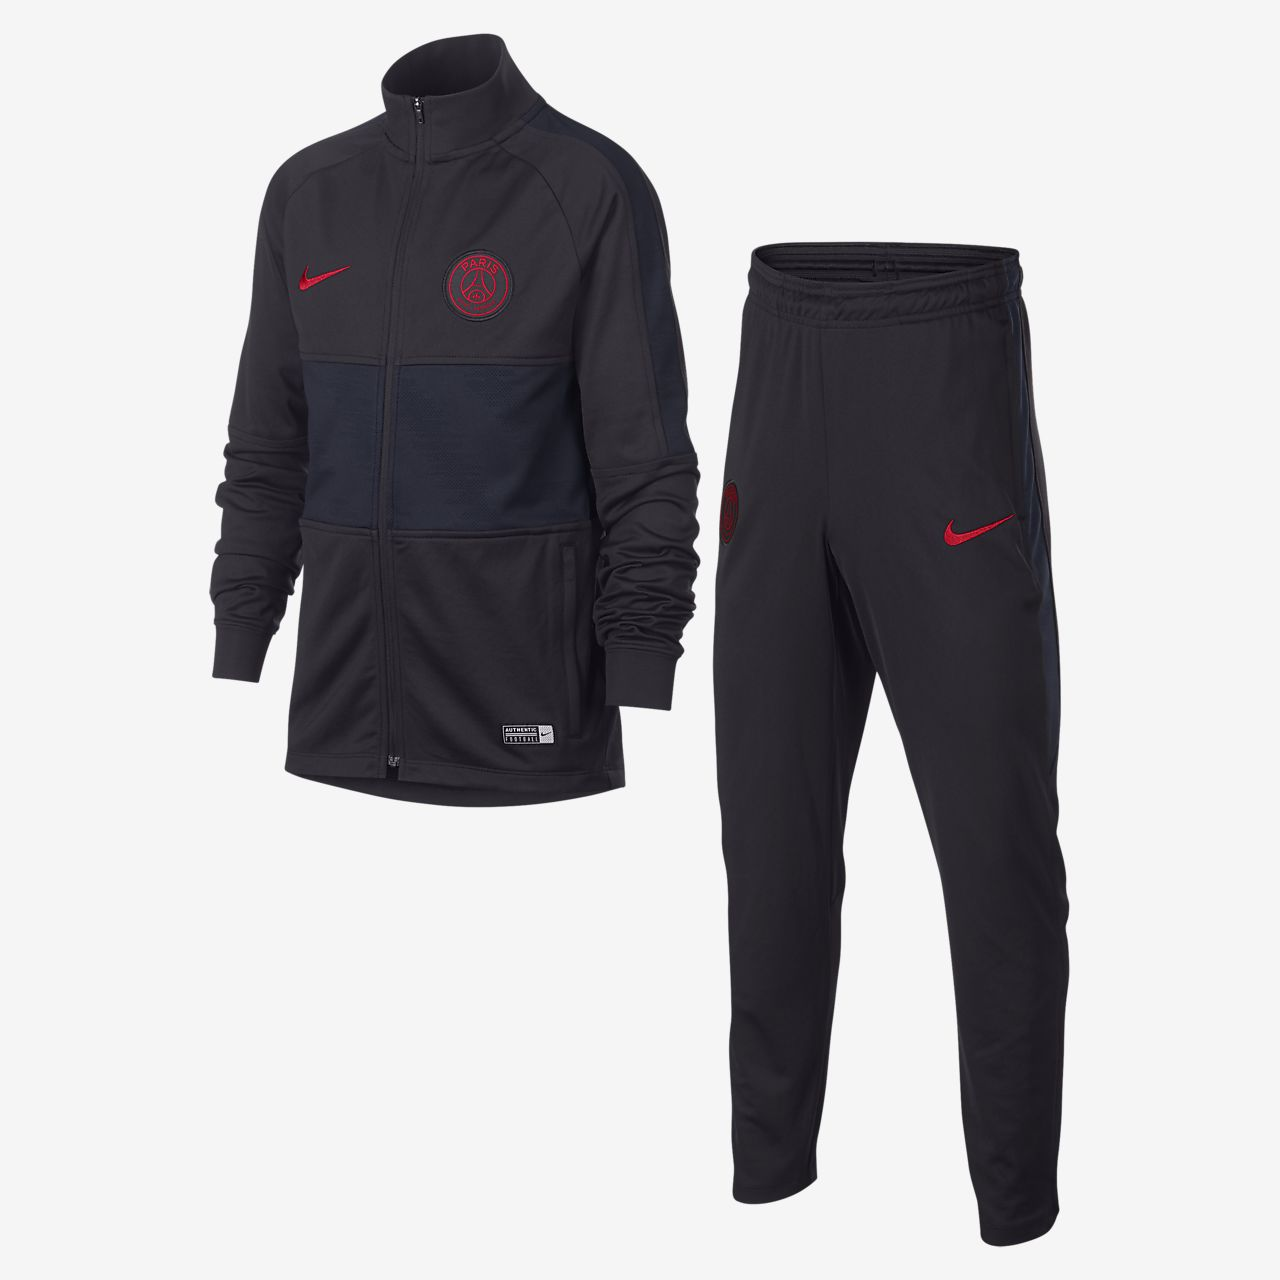 Nike Dri FIT Paris Saint Germain Strike Voetbaltrainingspak voor kids